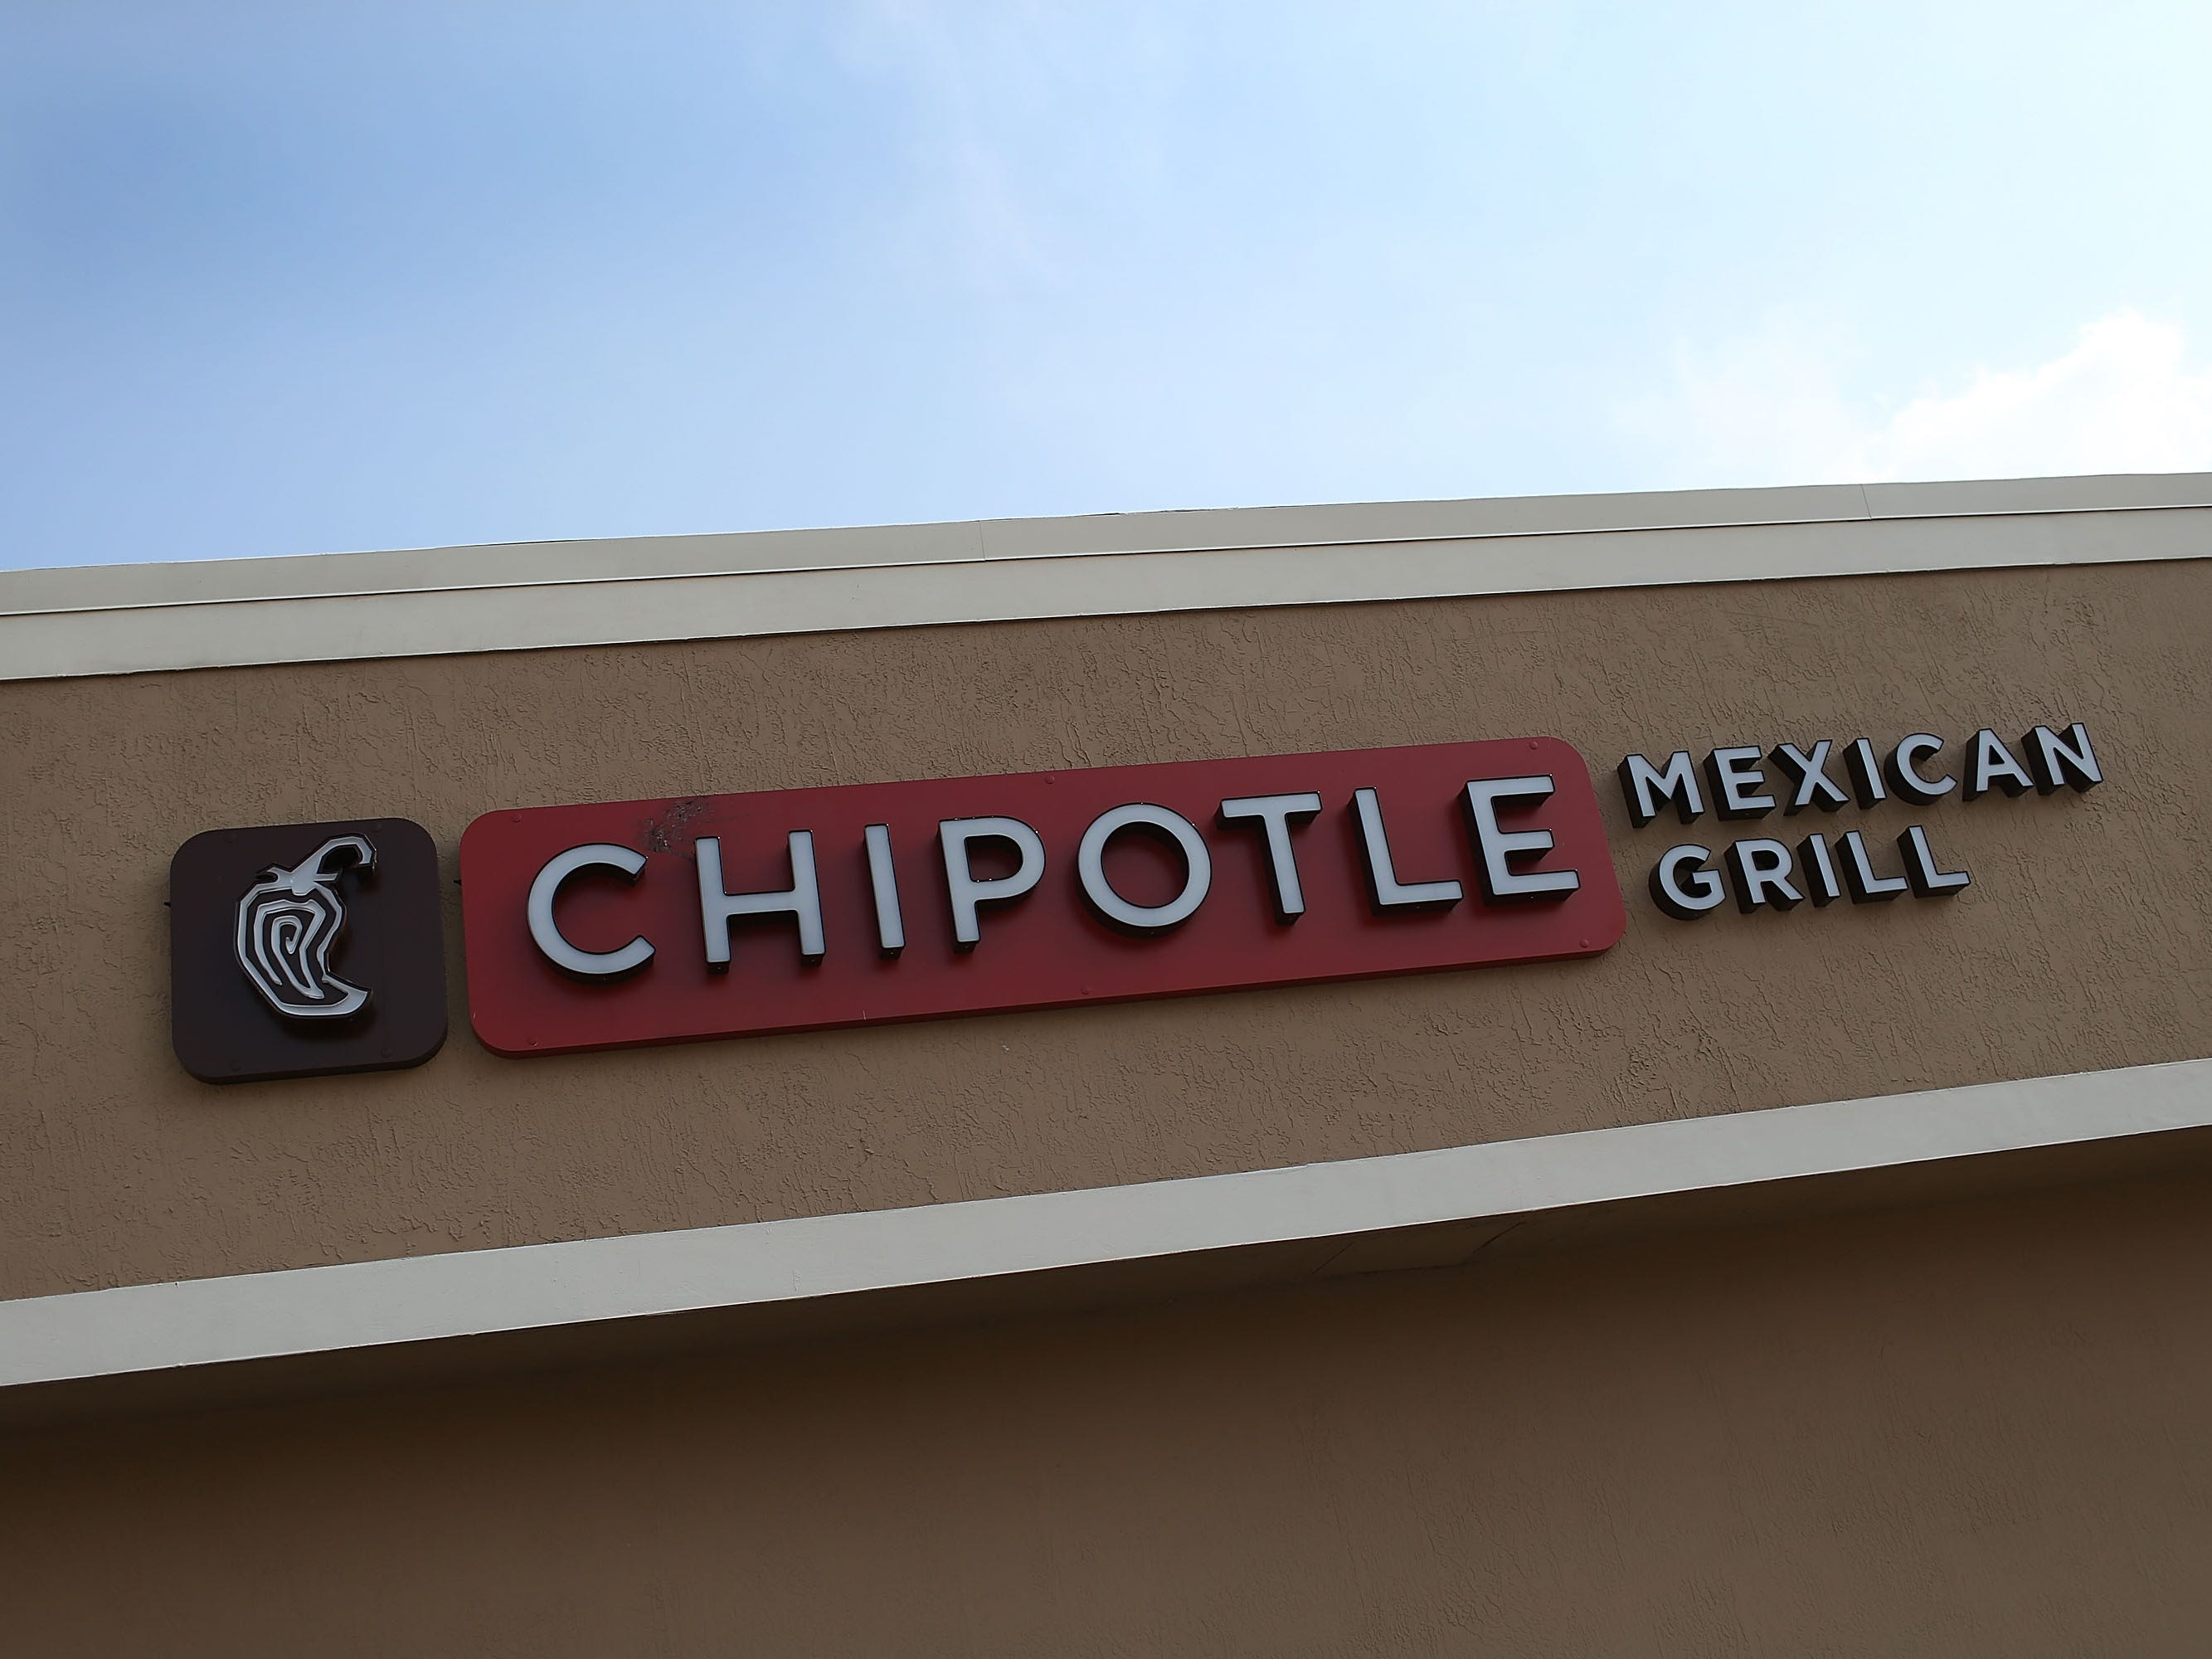 Chipotle, hiring 190. The Mexican-themed restaurant is hiring for a variety of positions. More info: careers.chipotle.com.